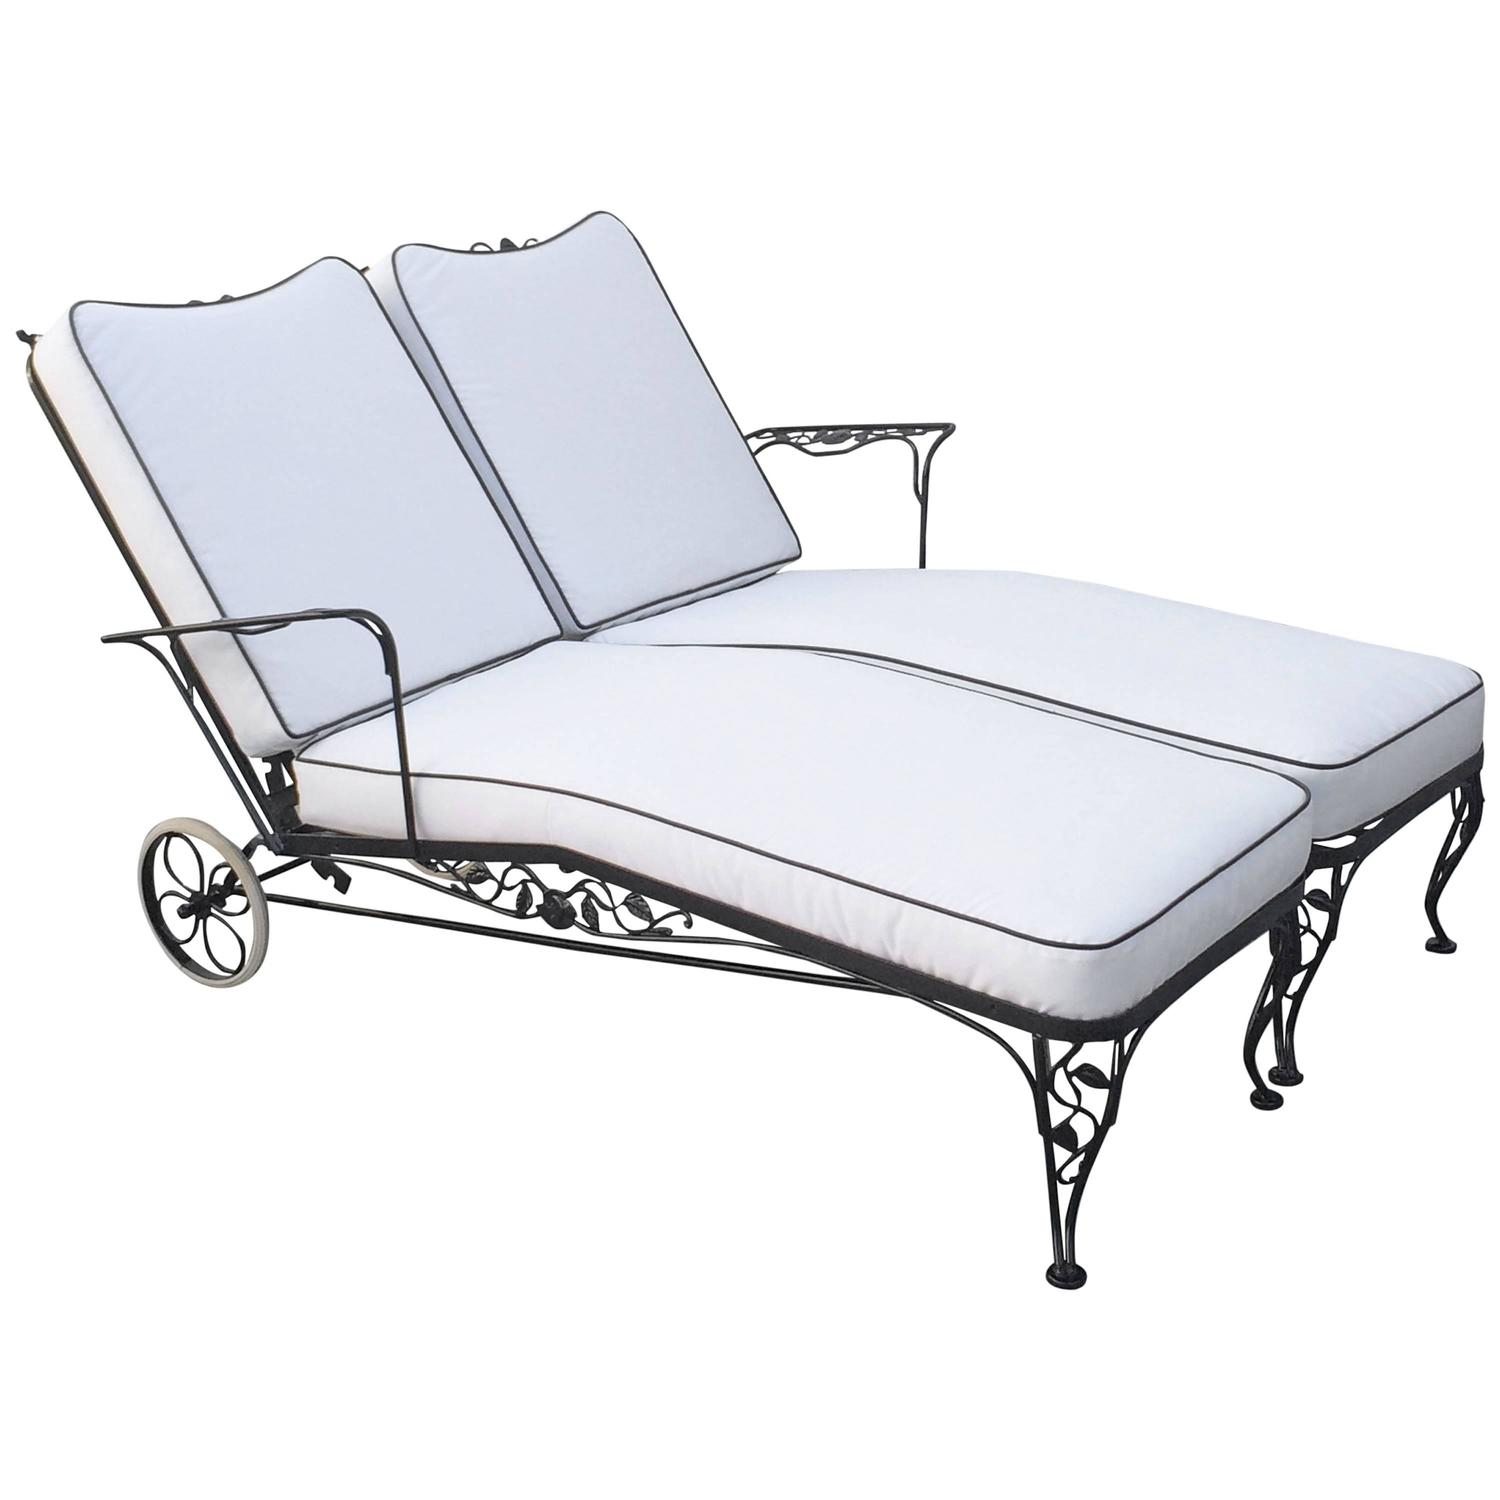 Wrought iron chaise lounge wrought iron chaise lounge at for Asian chaise lounge